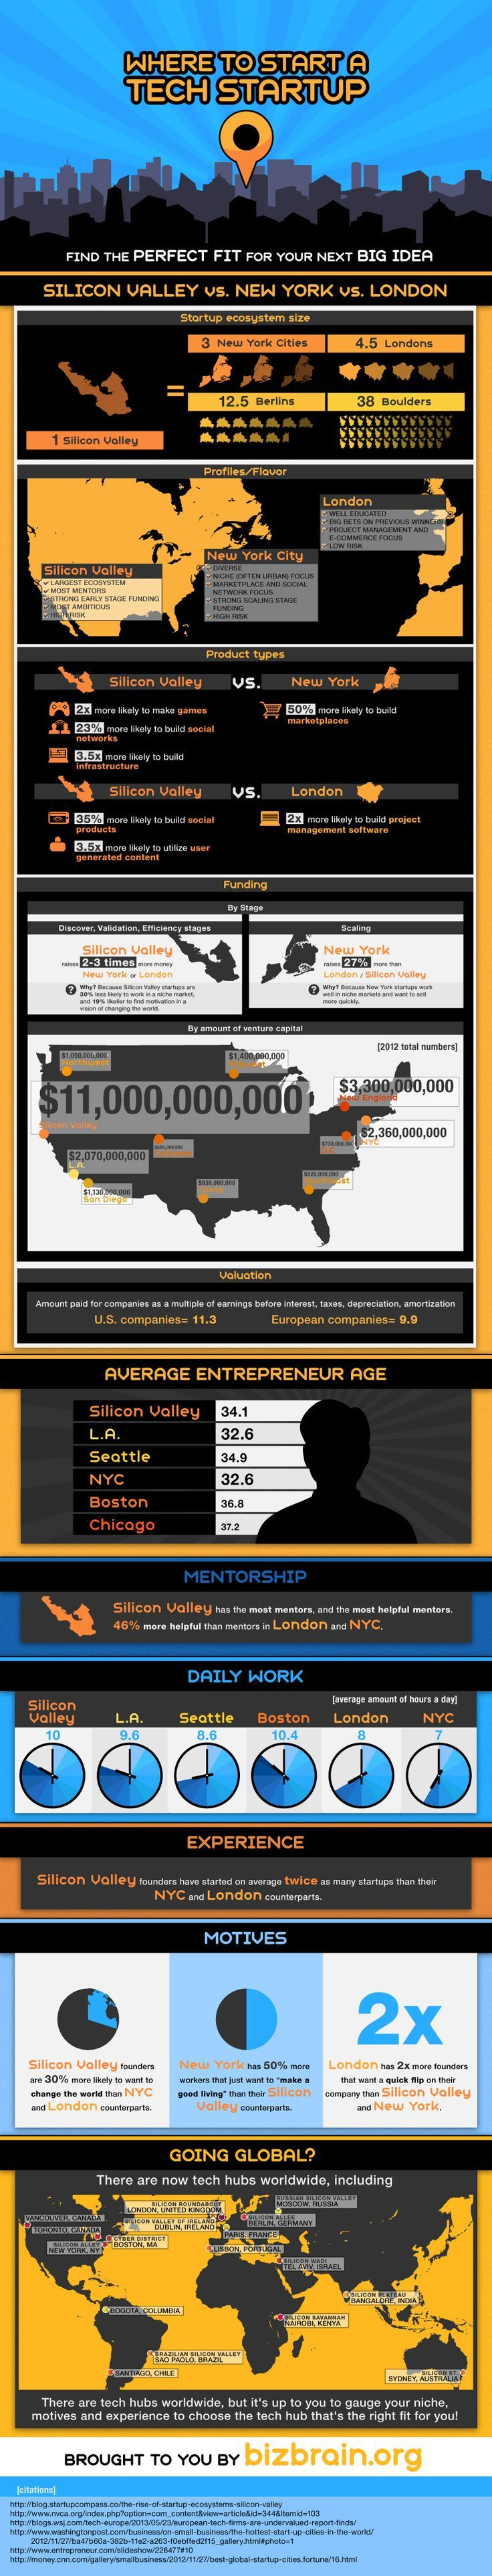 The Best Location to Launch A #Startup.